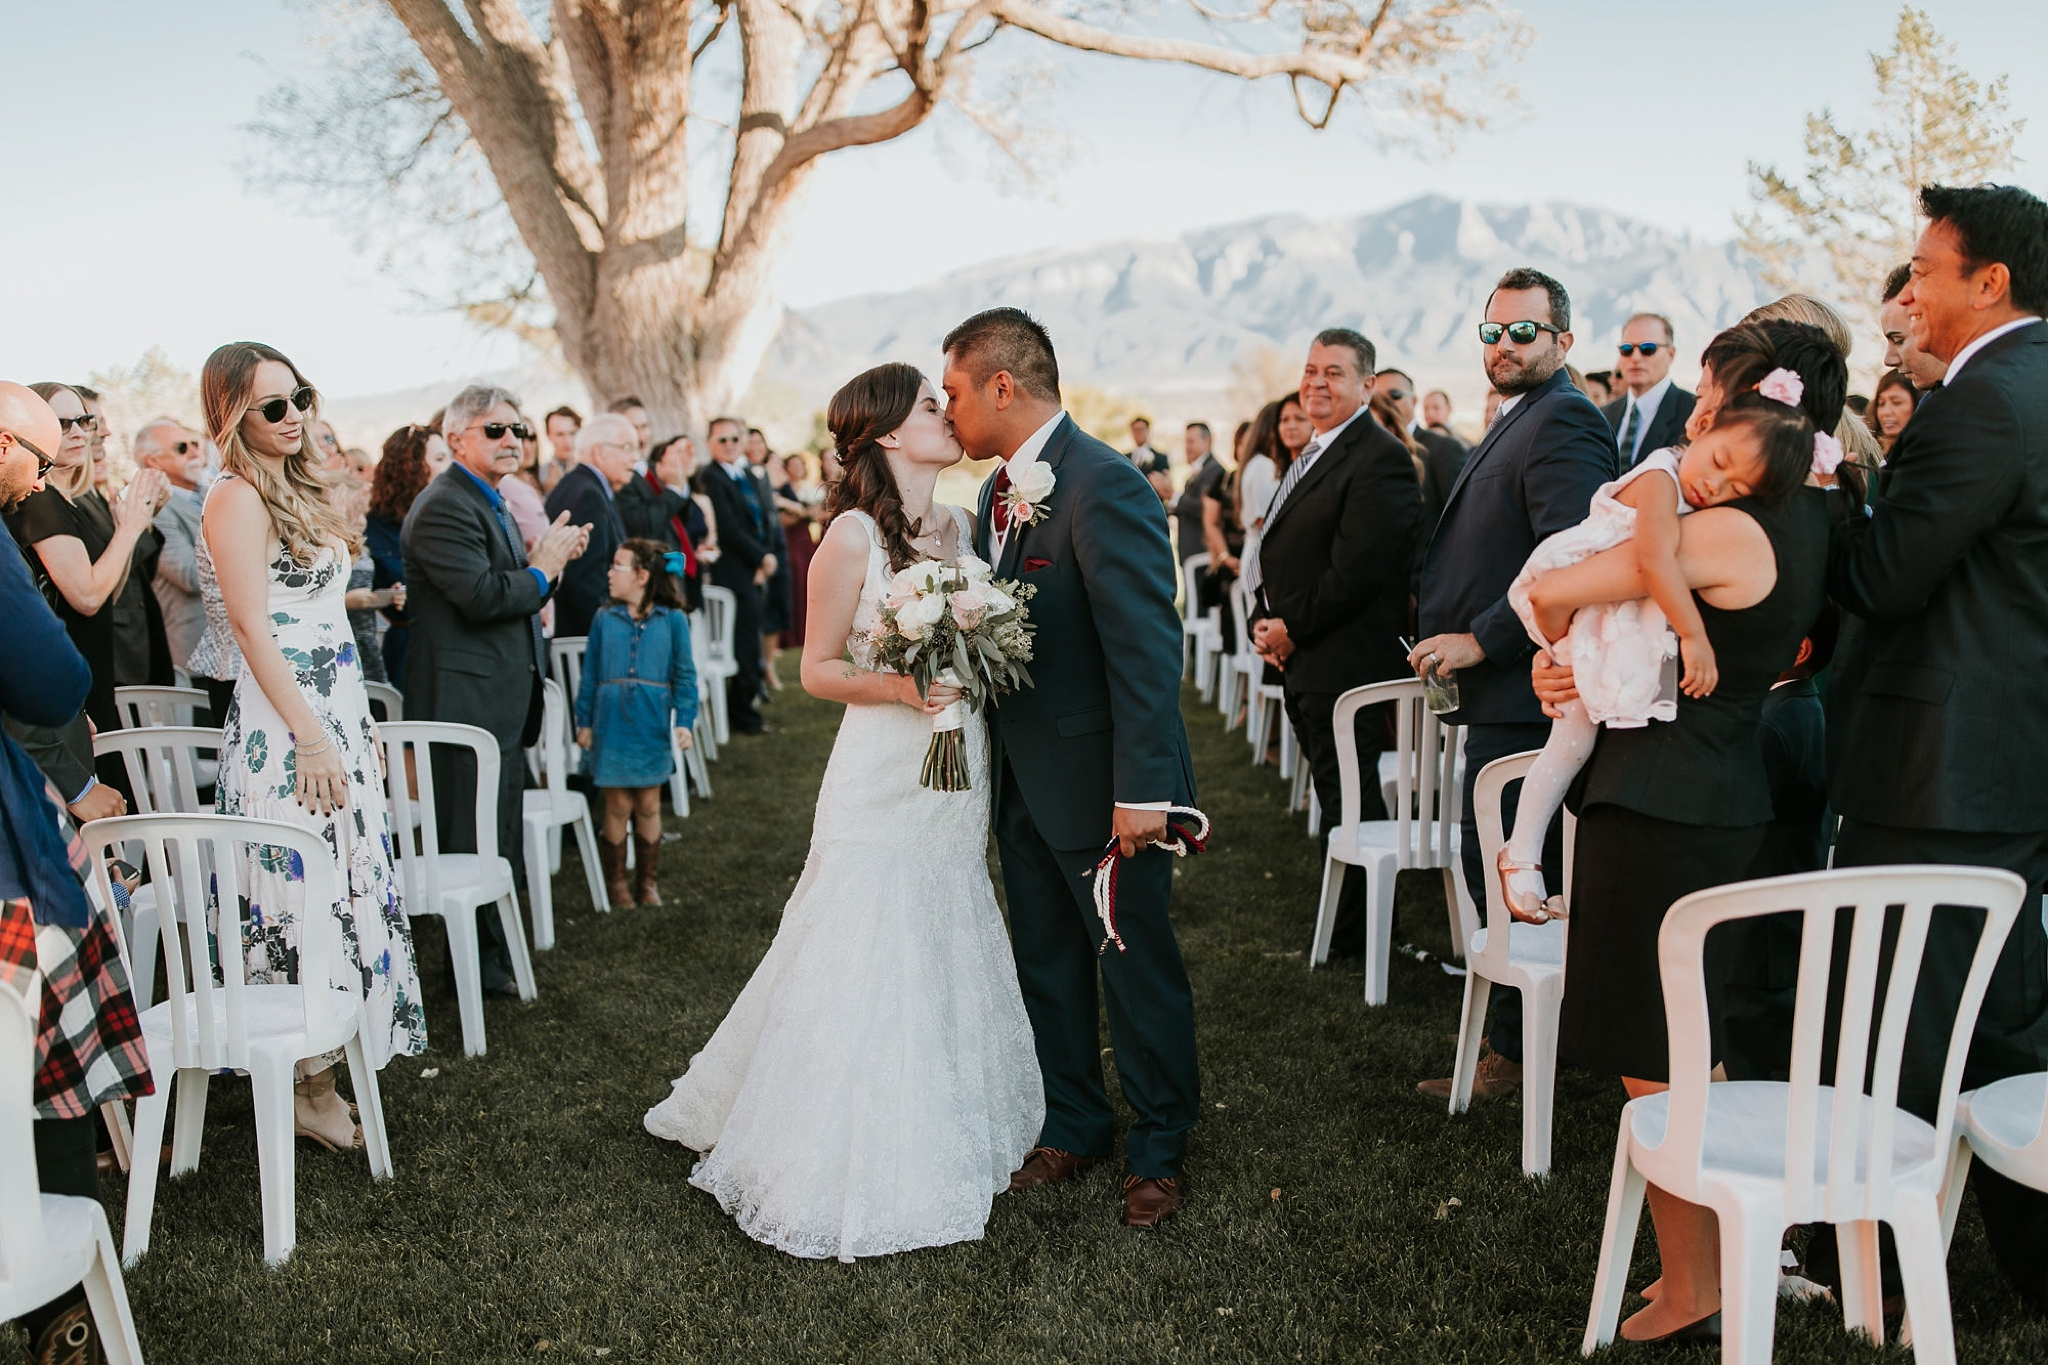 Alicia+lucia+photography+-+albuquerque+wedding+photographer+-+santa+fe+wedding+photography+-+new+mexico+wedding+photographer+-+new+mexico+wedding+-+wedding+vows+-+writing+your+own+vows+-+wedding+inspo_0014.jpg